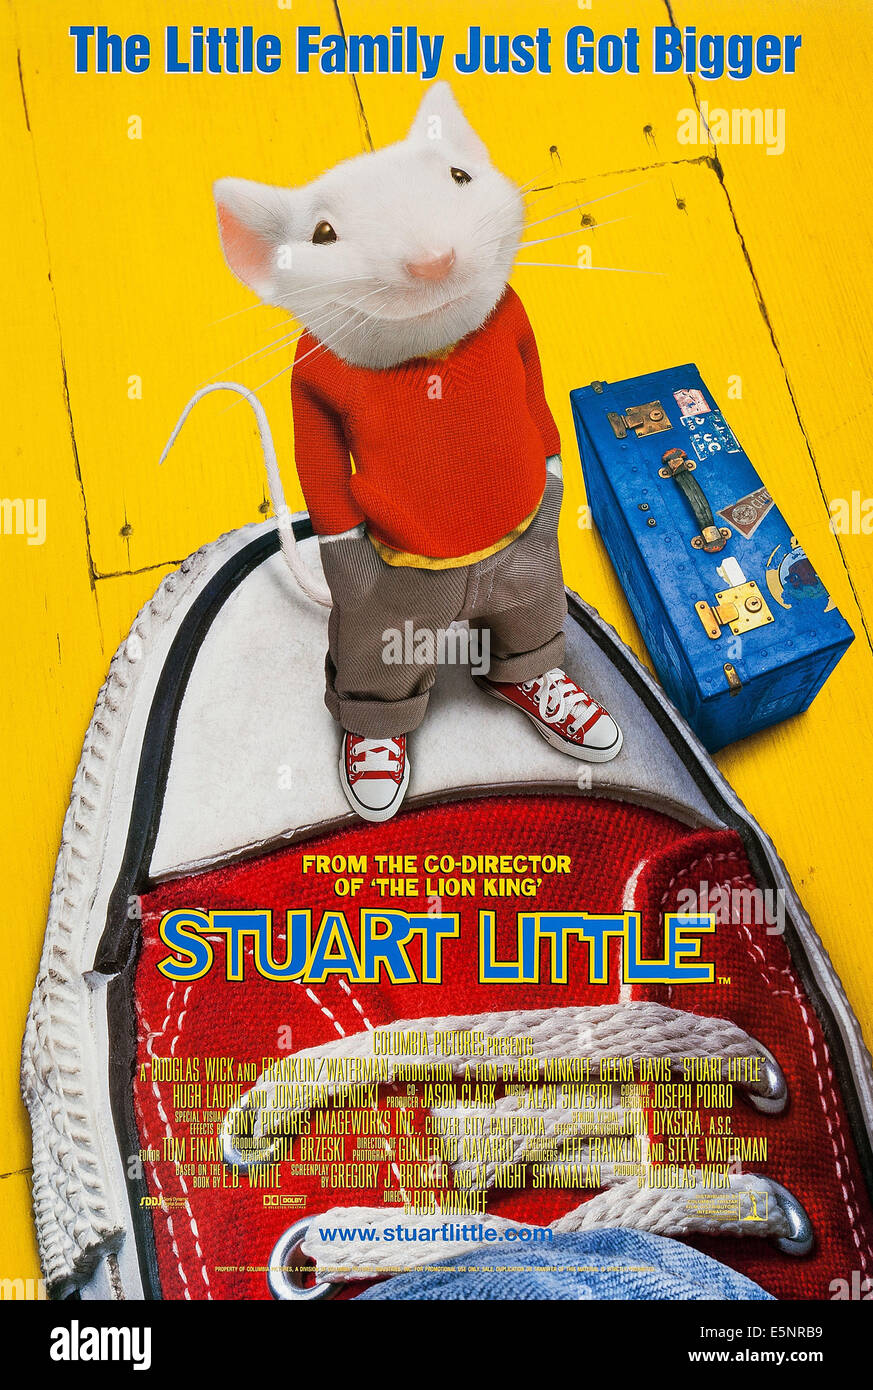 STUART LITTLE, US advance poster art, 1999. ©Columbia Pictures/ Courtesy: Everett Collection. - Stock Image